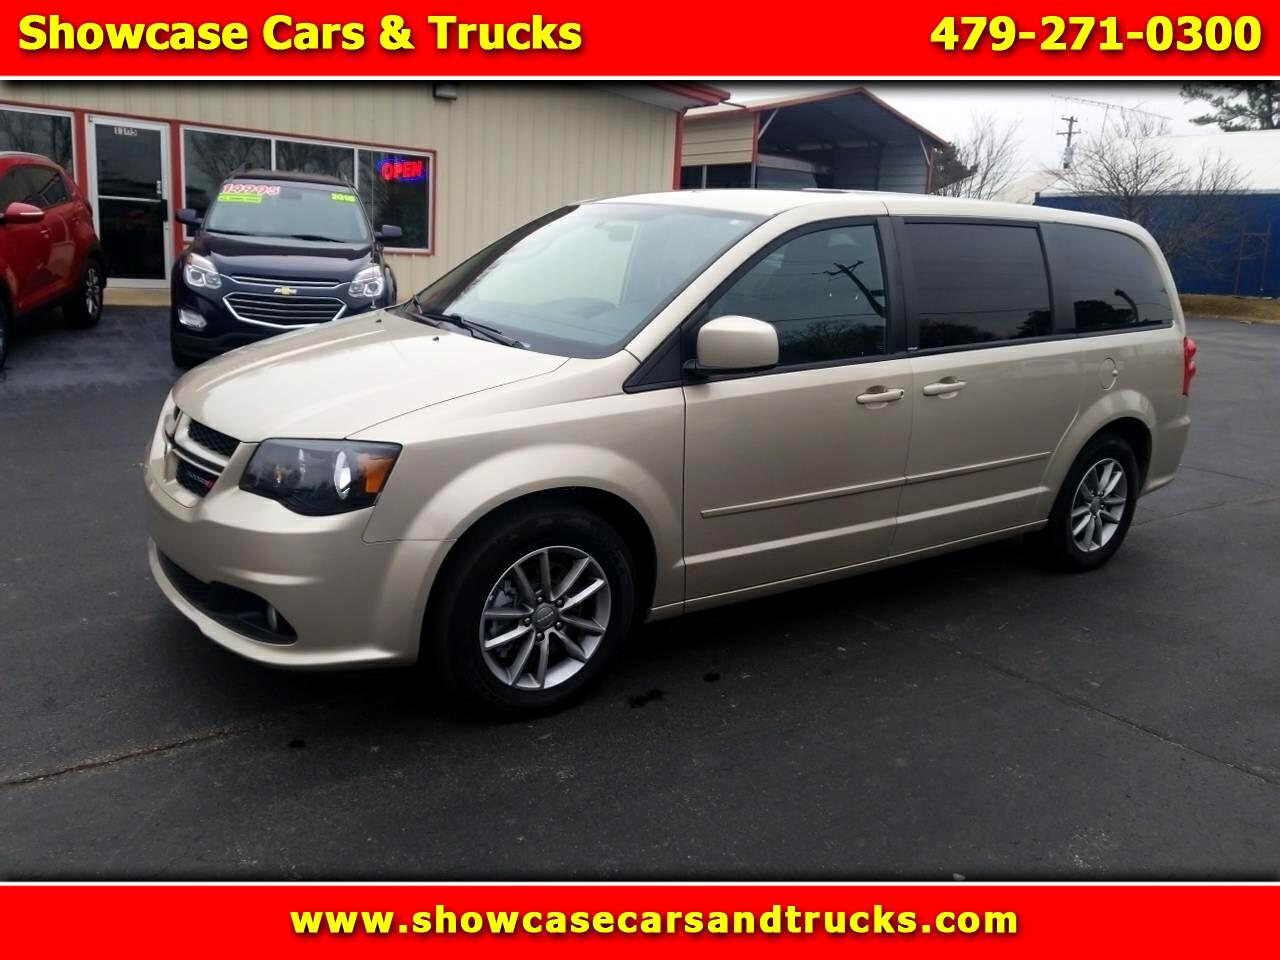 2014 Dodge Grand Caravan 4dr Wgn R/T